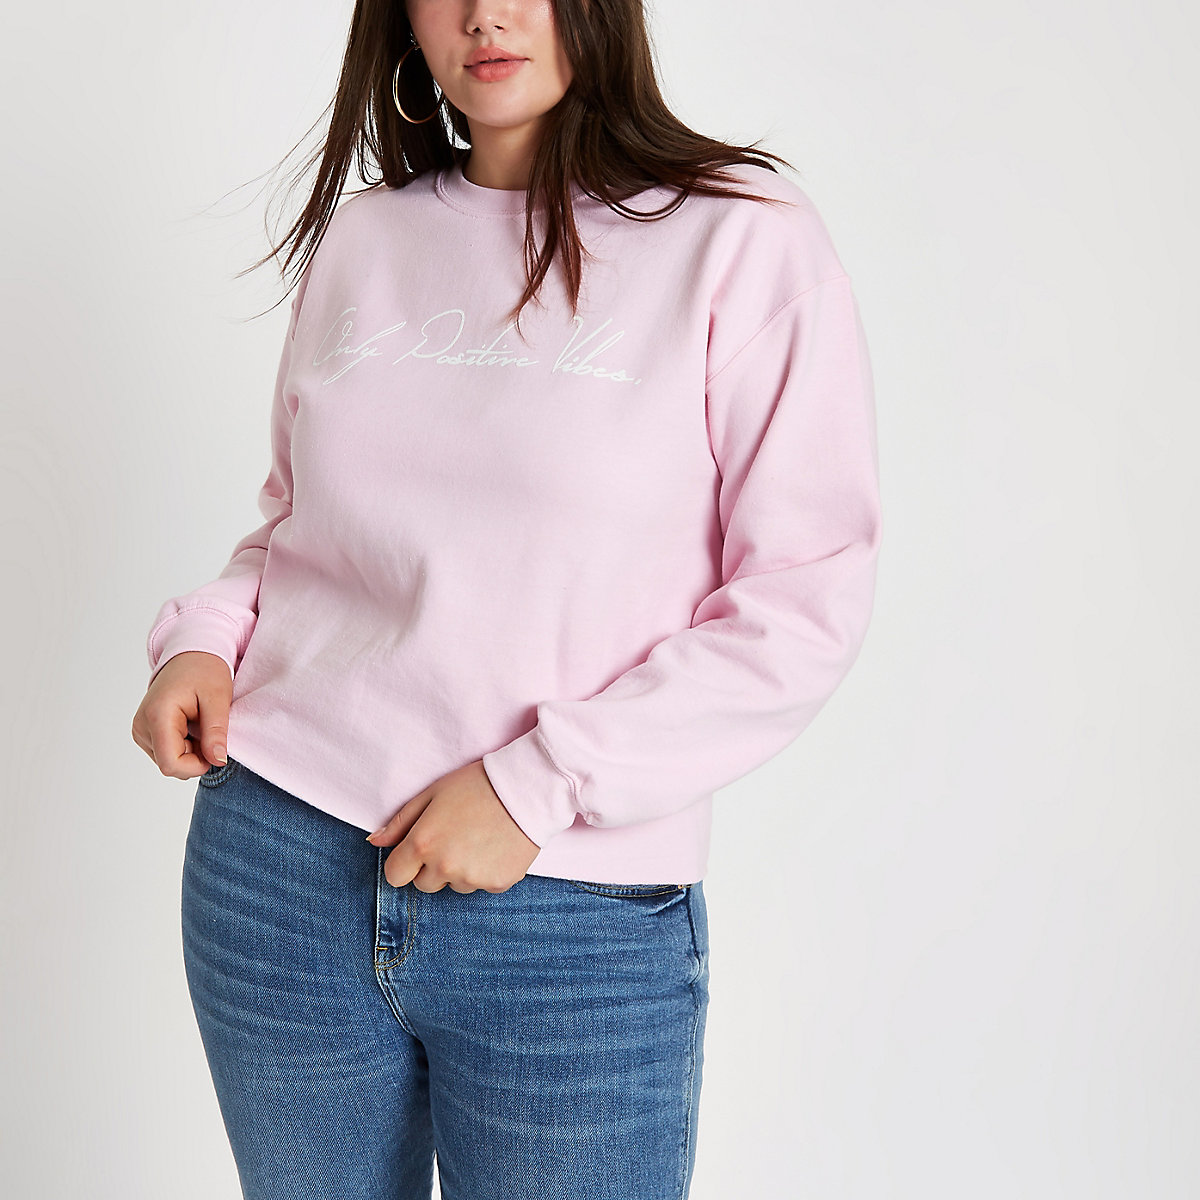 Plus pink 'Only positive vibes' sweatshirt